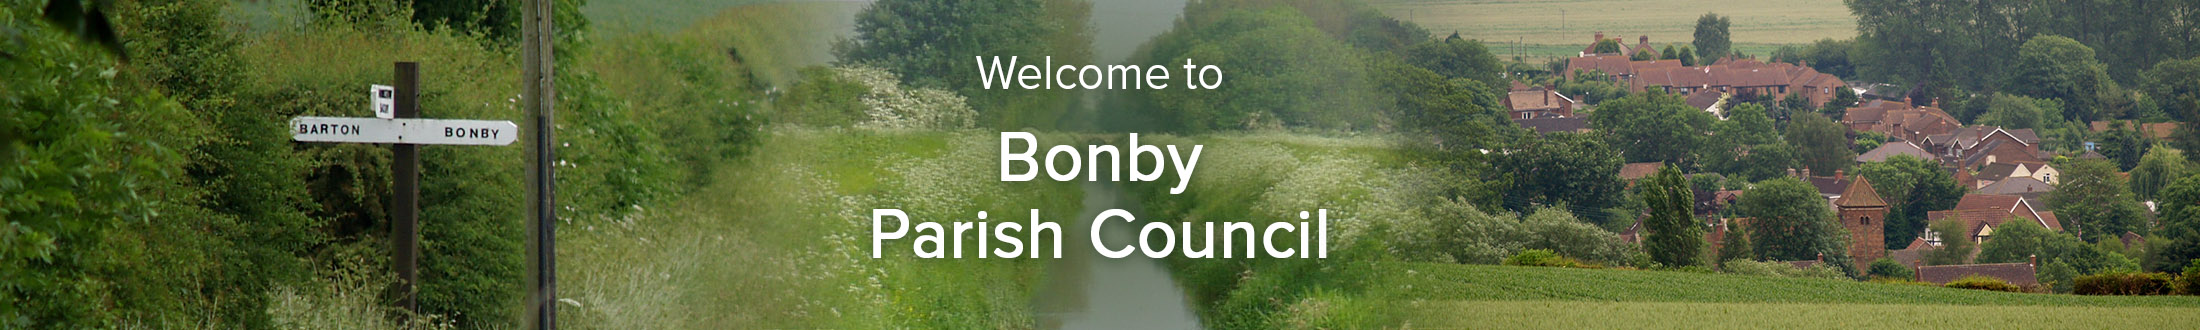 Header Image for Bonby Parish Council